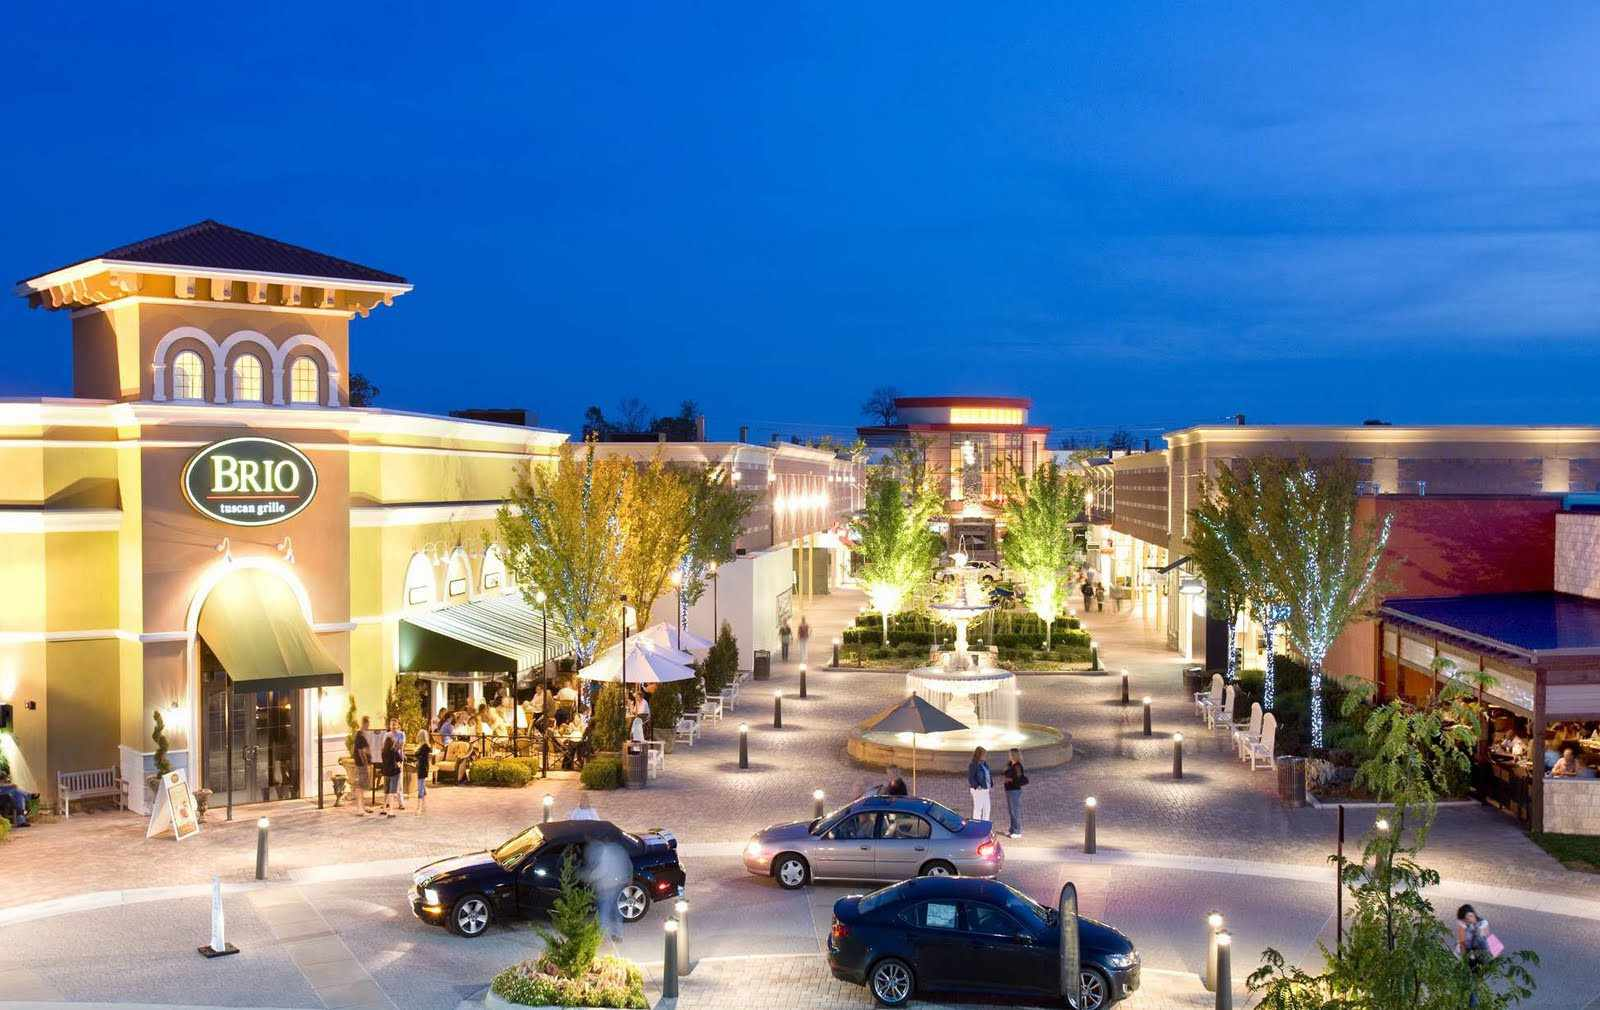 47cba5fb373 List of Metro Detroit Shopping Malls and Centers